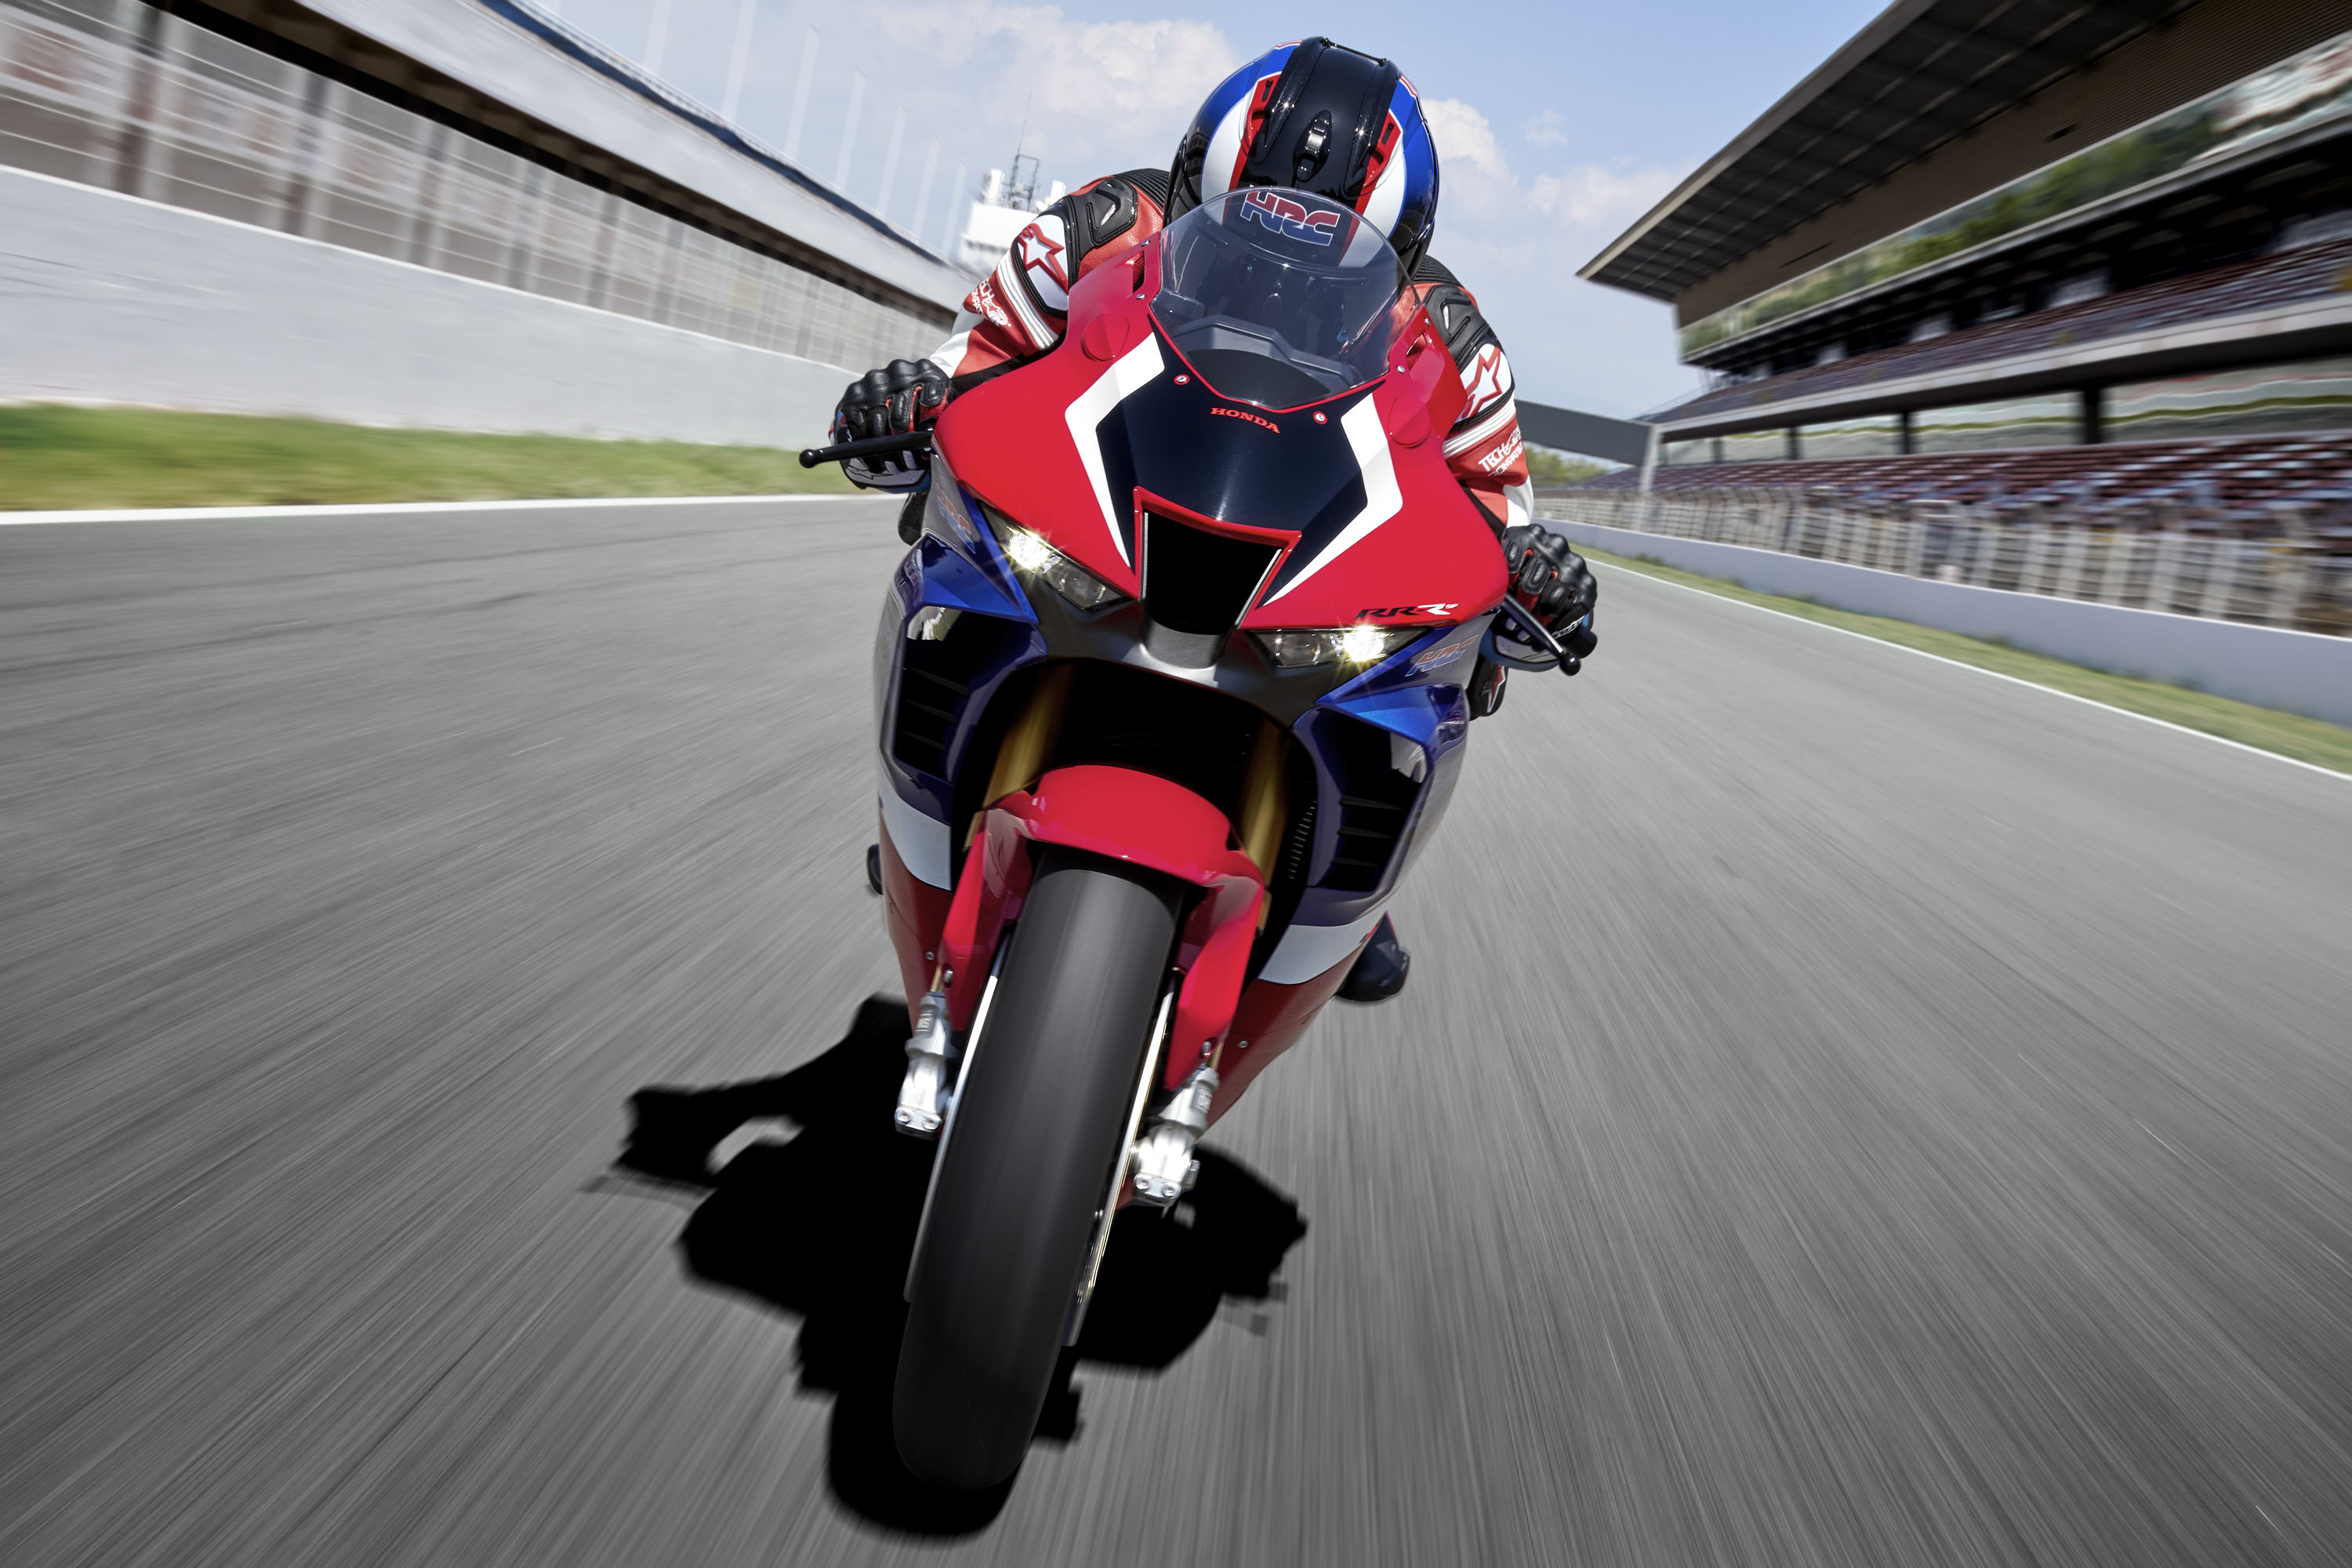 20YM_CBR1000RR-R_SP_Location_Riding_01_0315